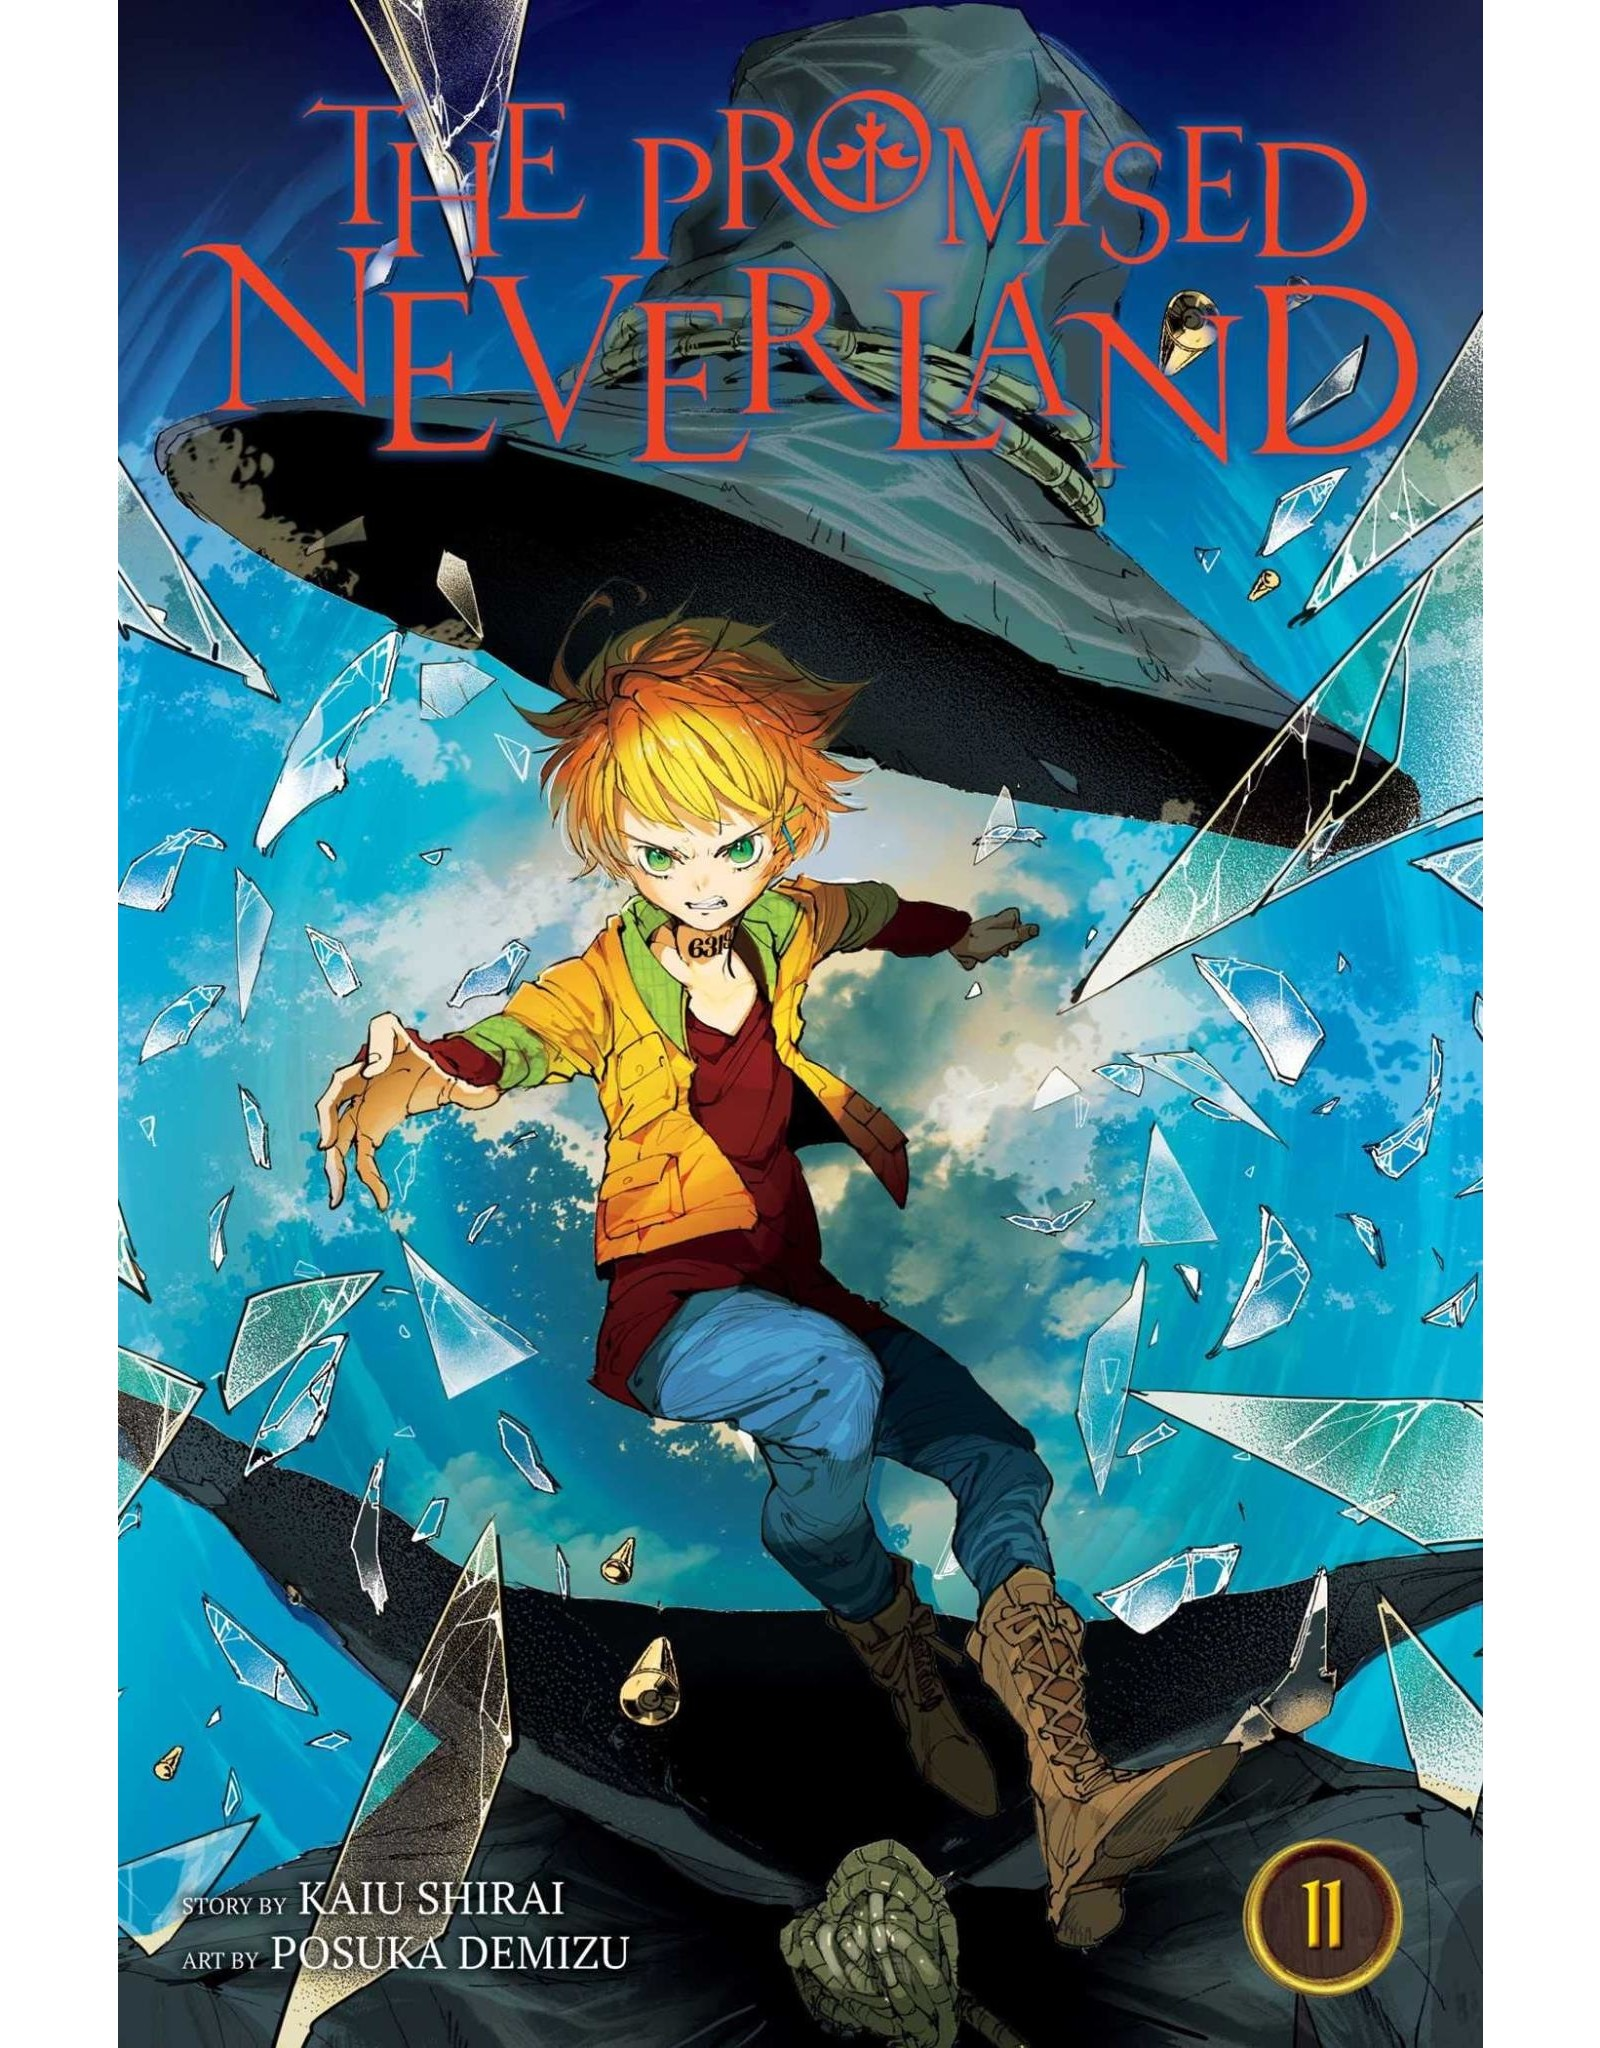 The Promised Neverland 11 (English Version)